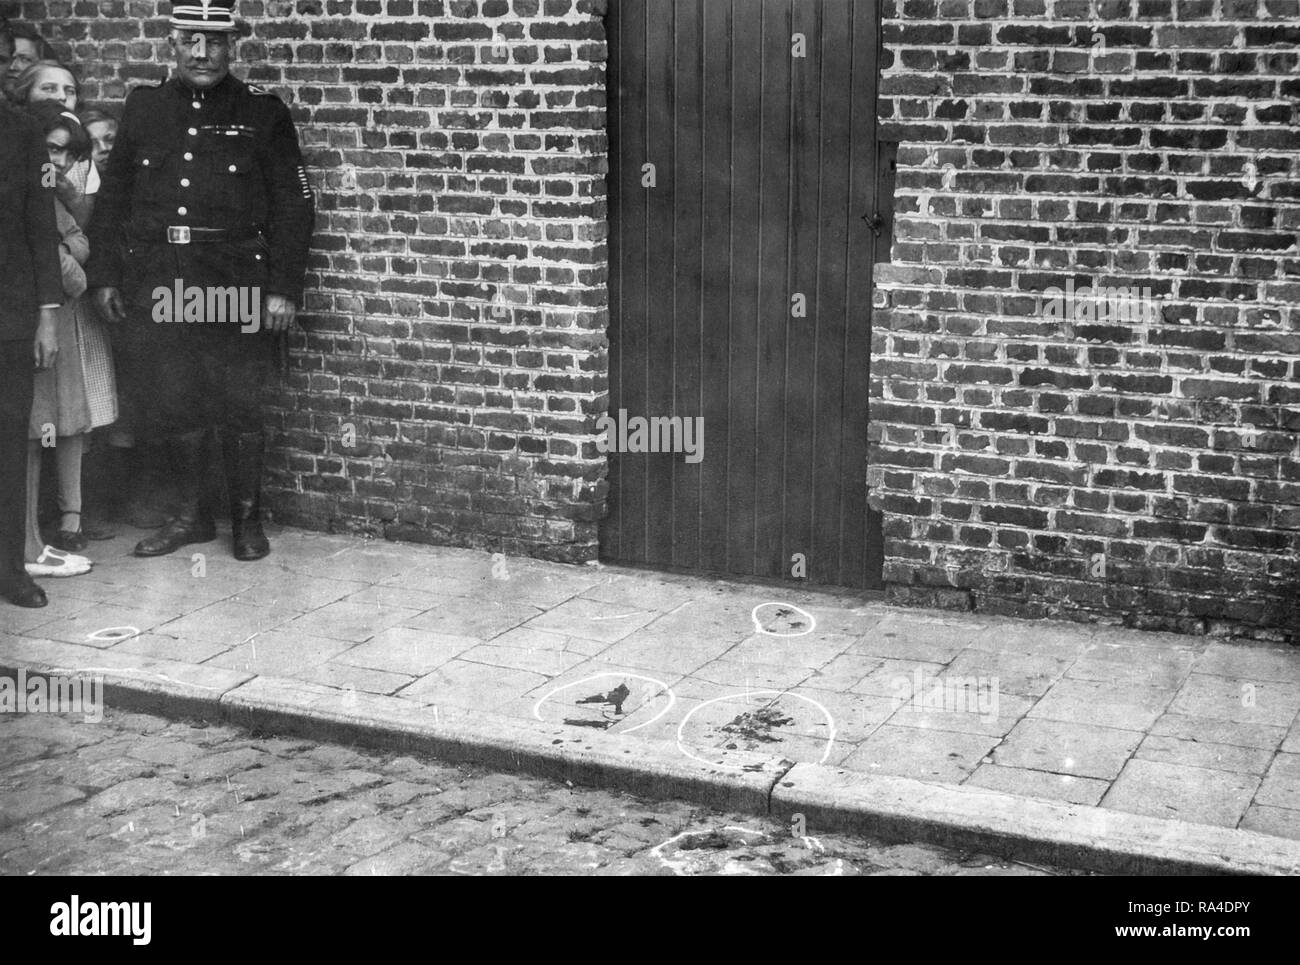 Mid twentieth century black and white photo showing police officer / gendarme and marked blood stains at crime scene on pavement - Stock Image